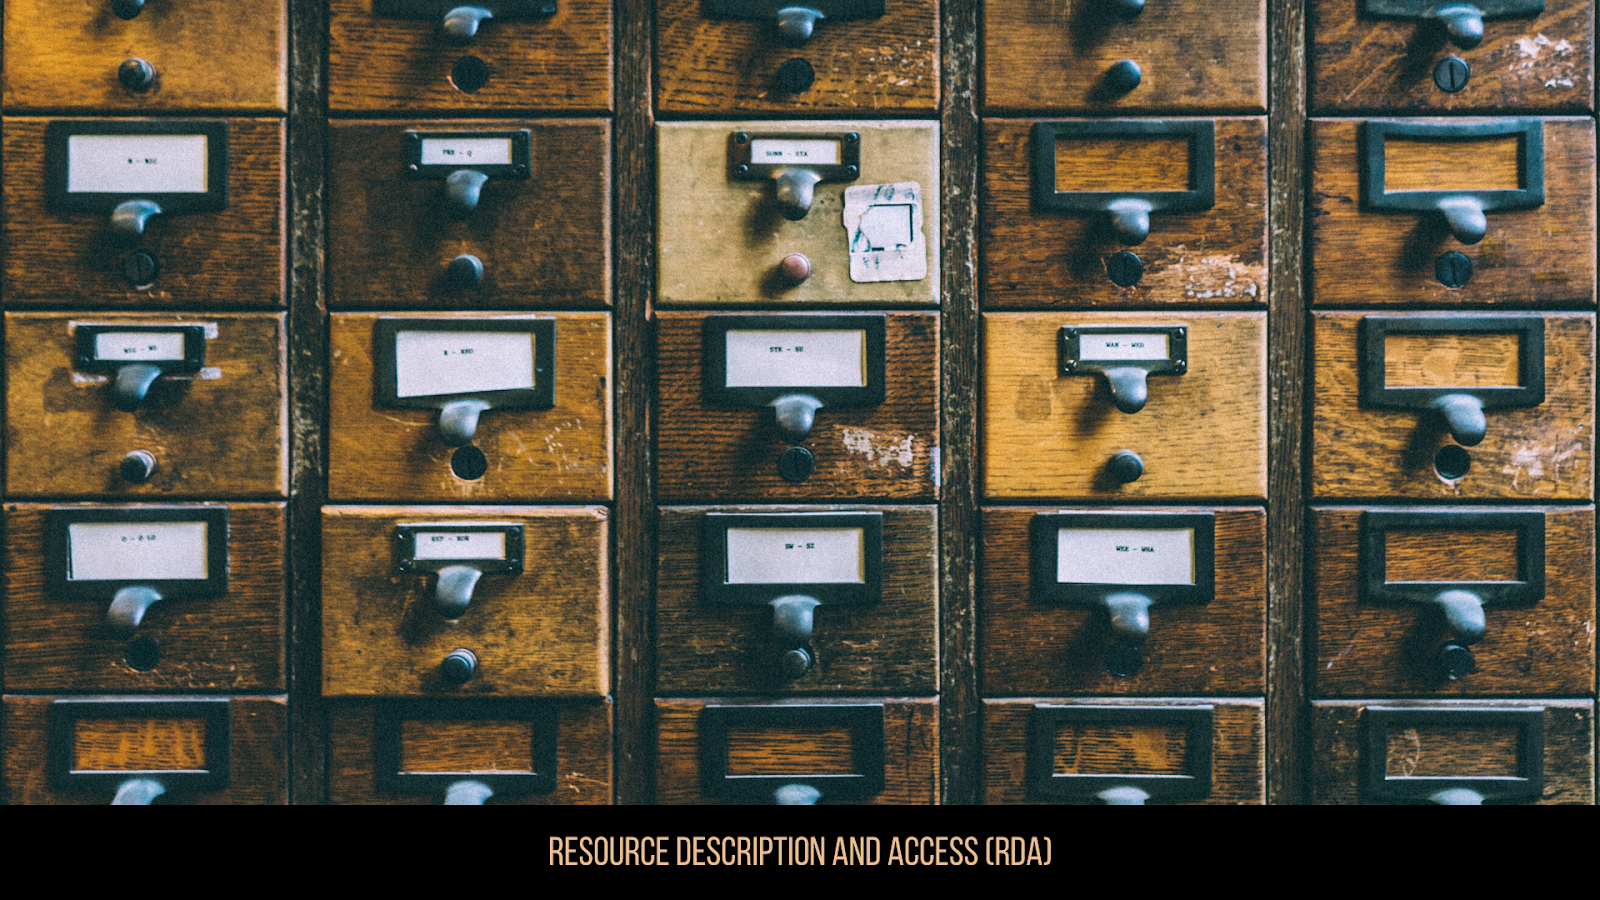 Resource Description and Access (RDA)